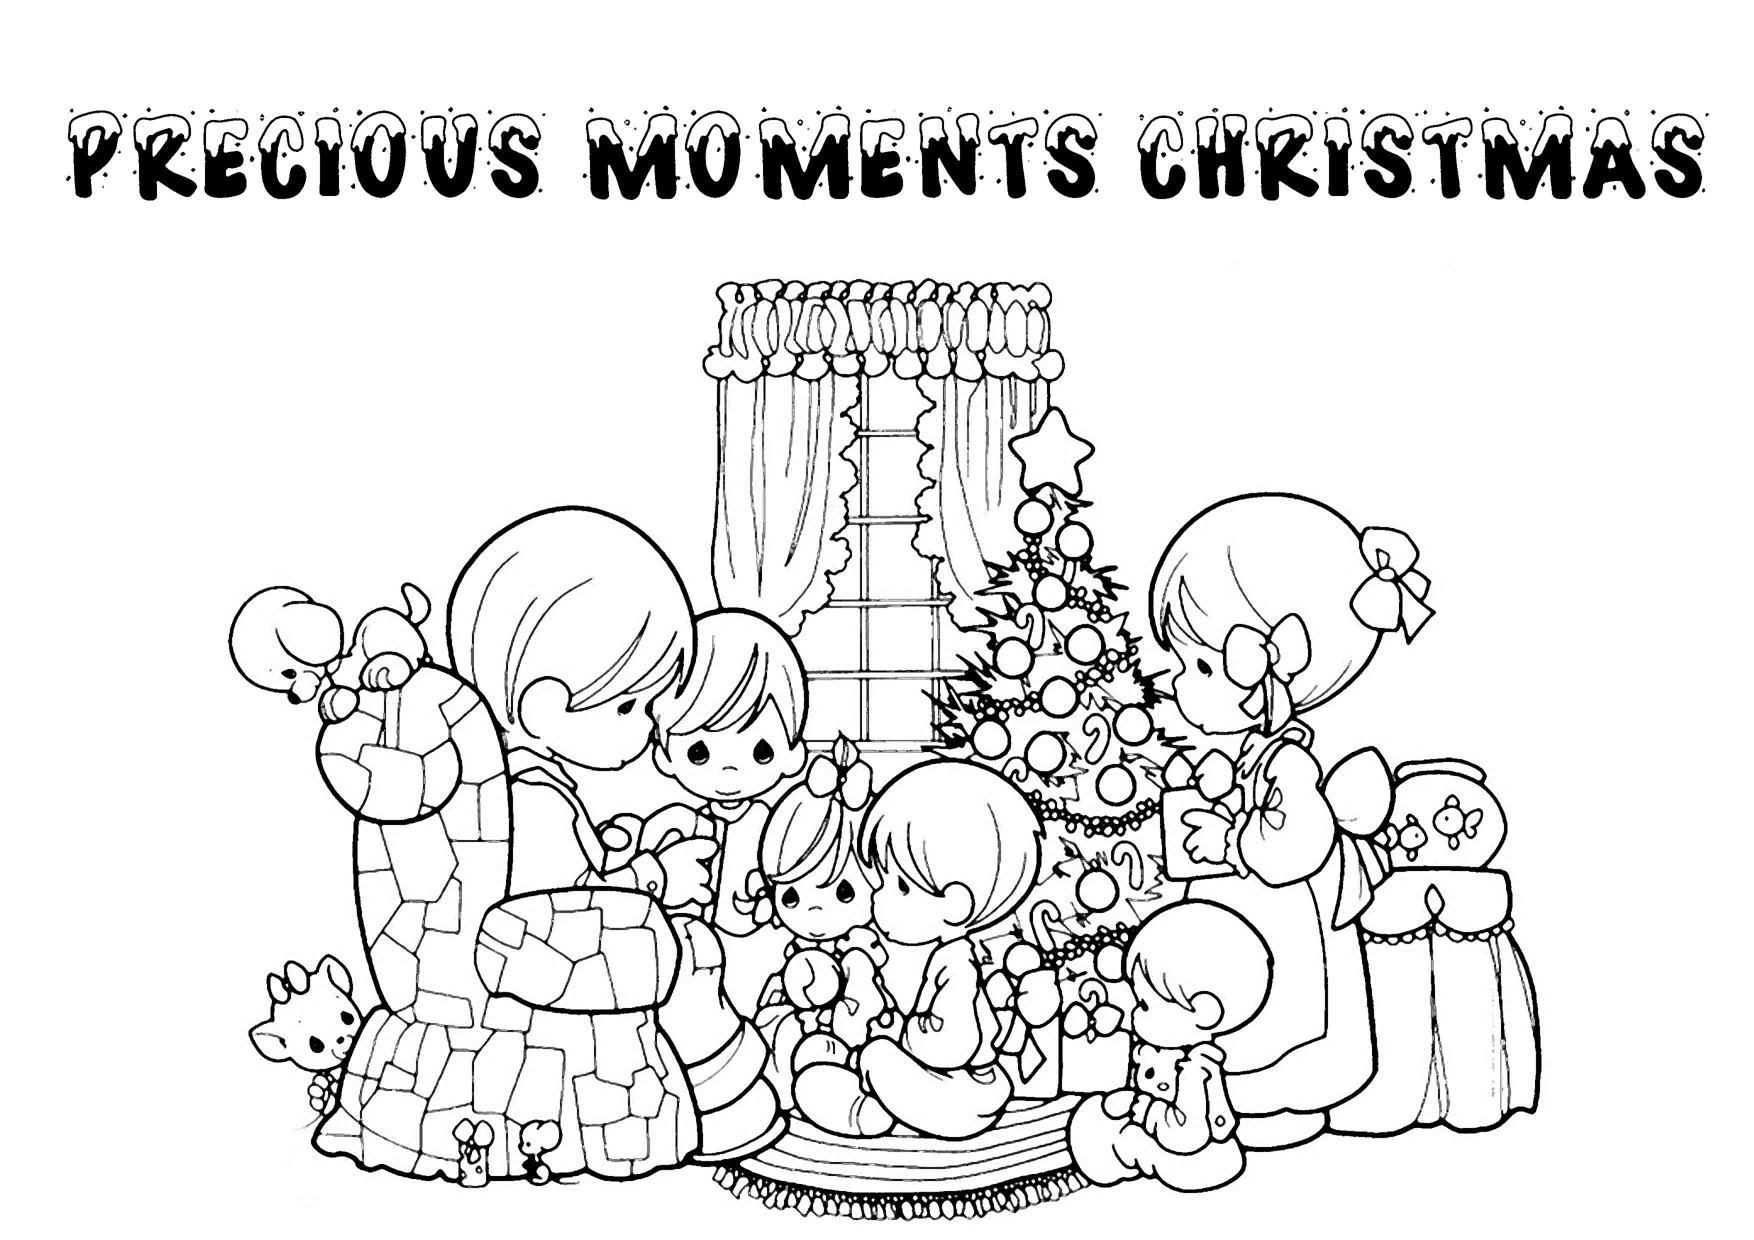 Spongebob Christmas Coloring Pages Free Printable